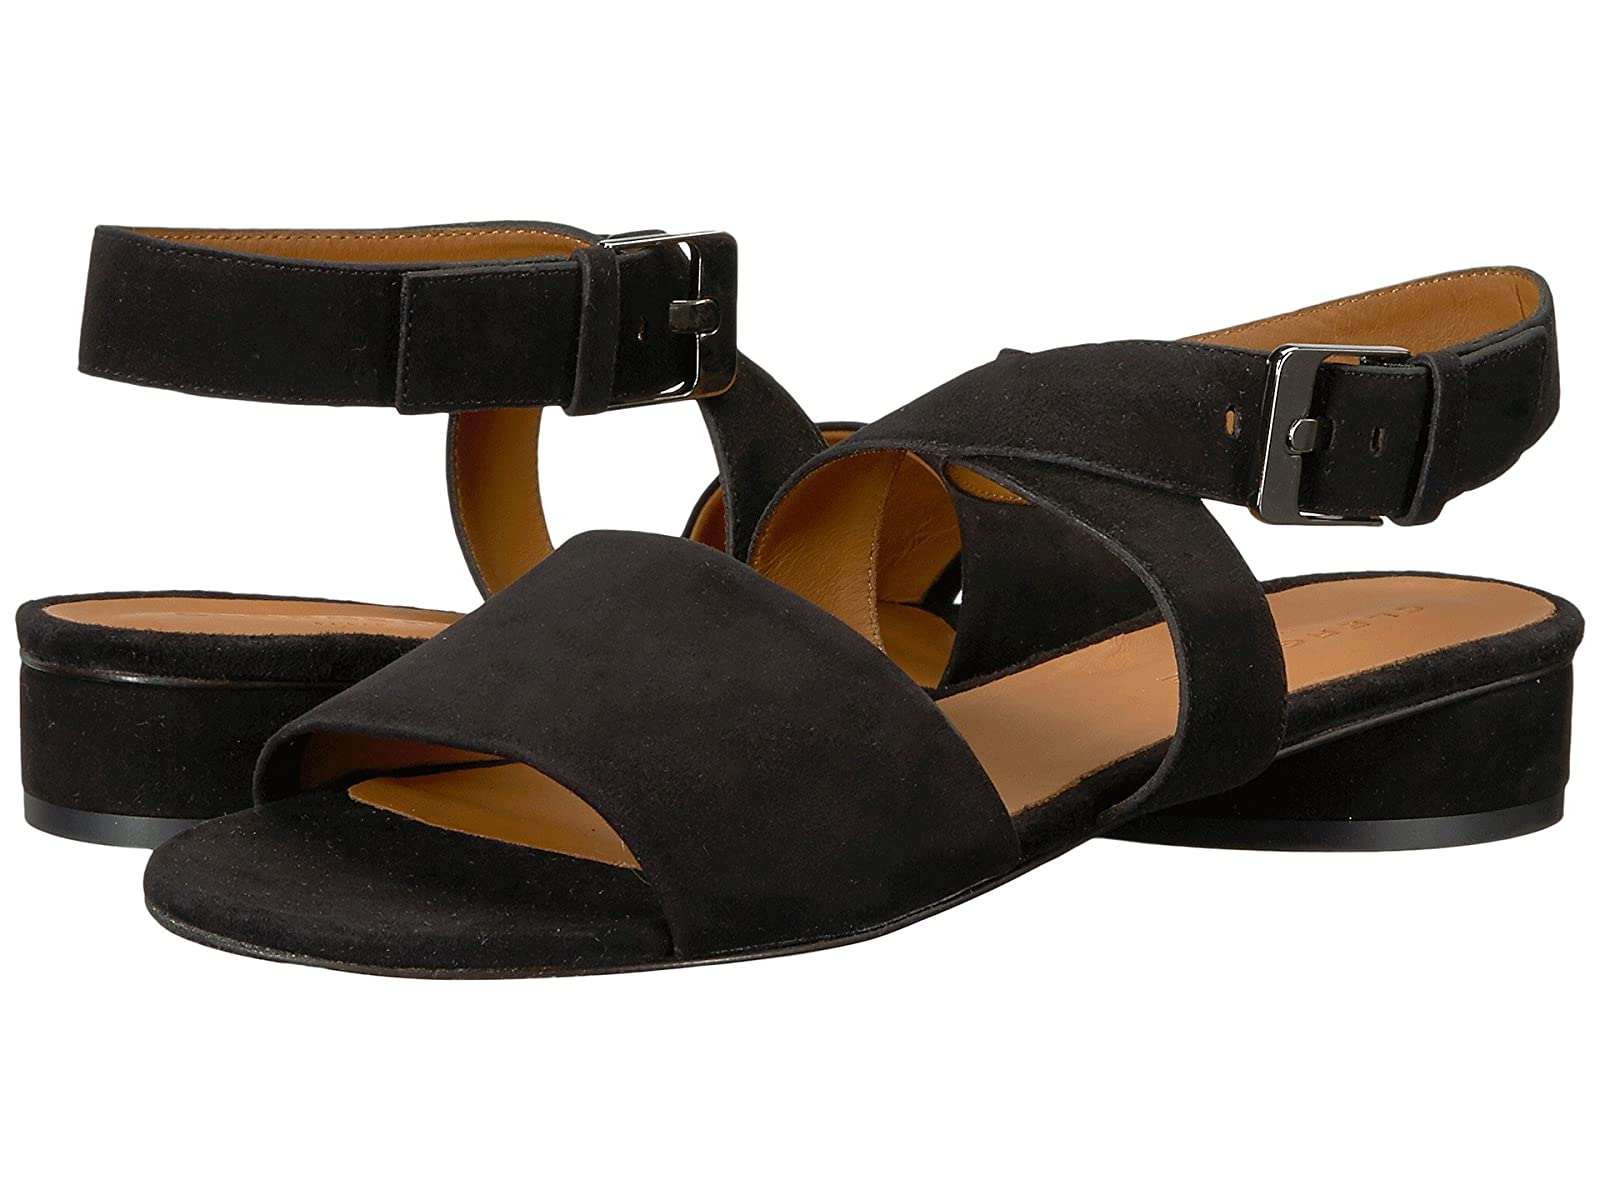 Clergerie FinaCheap and distinctive eye-catching shoes